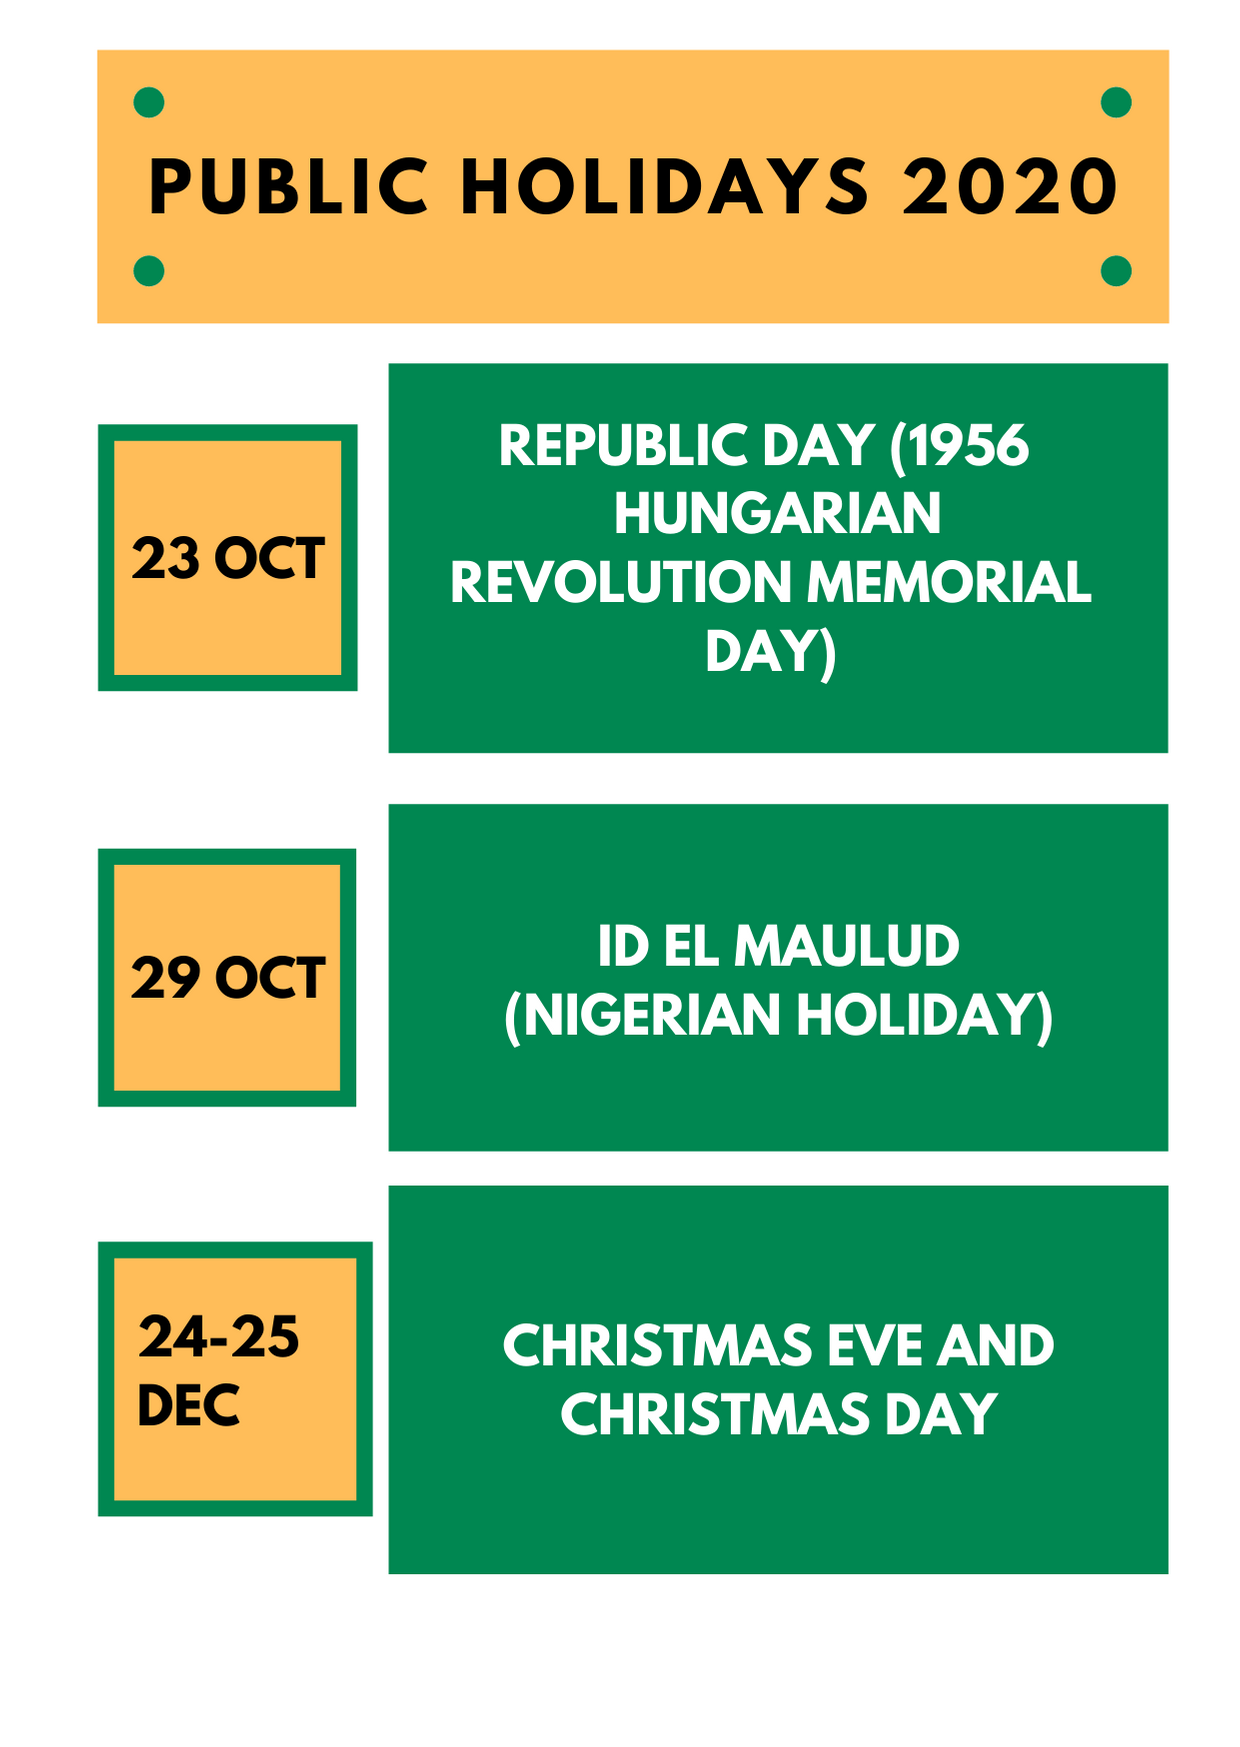 public_holiday_2020_copy_copy.png